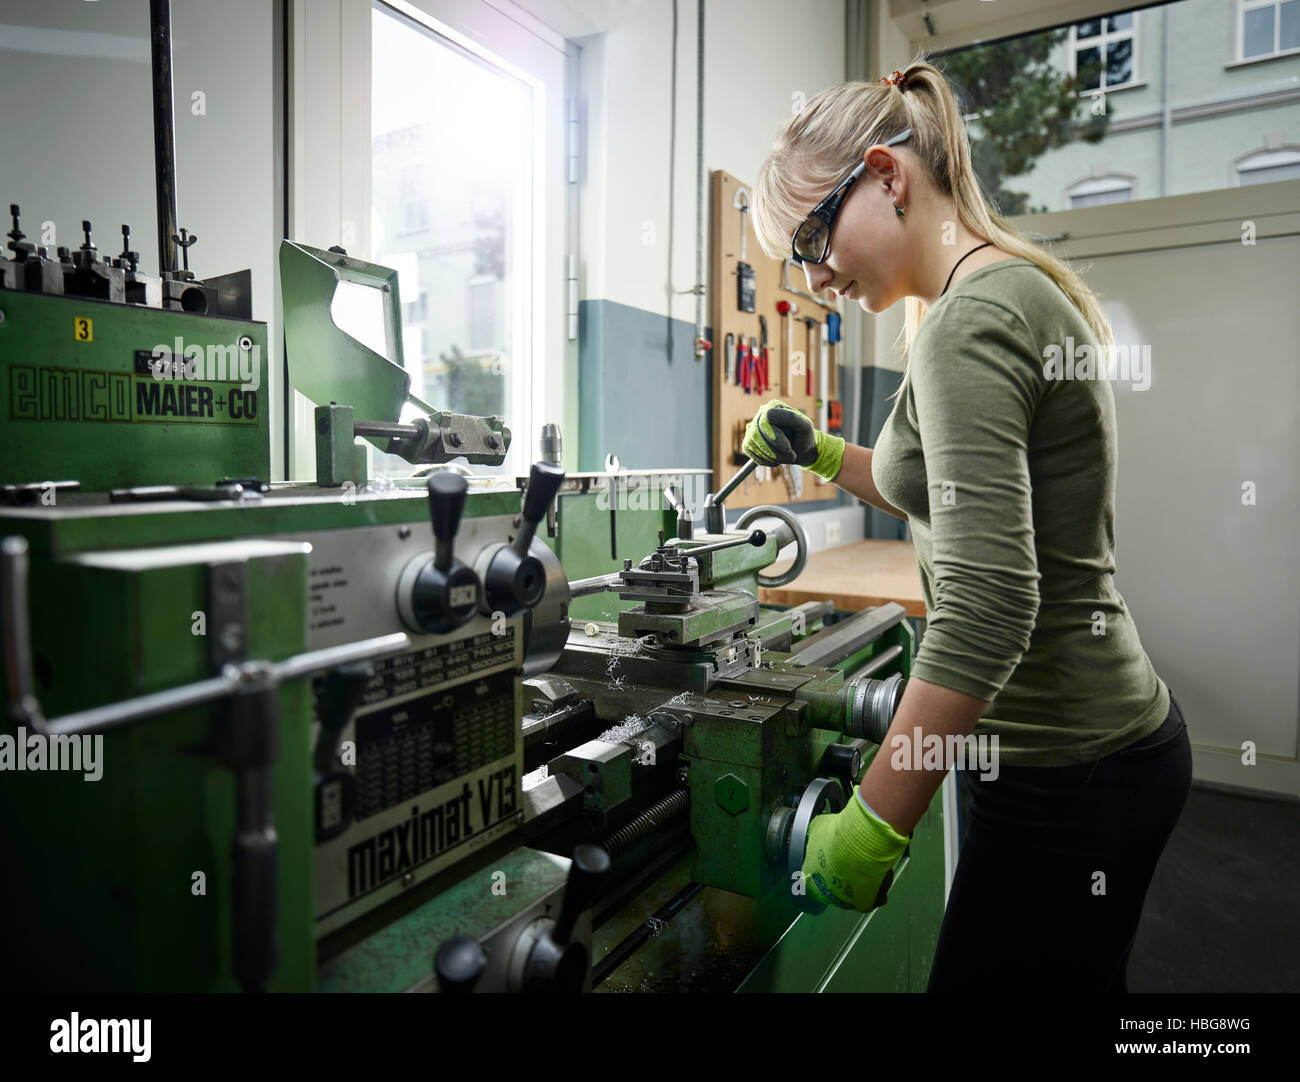 Young woman working on lathe, Metalwork, training - Stock Image